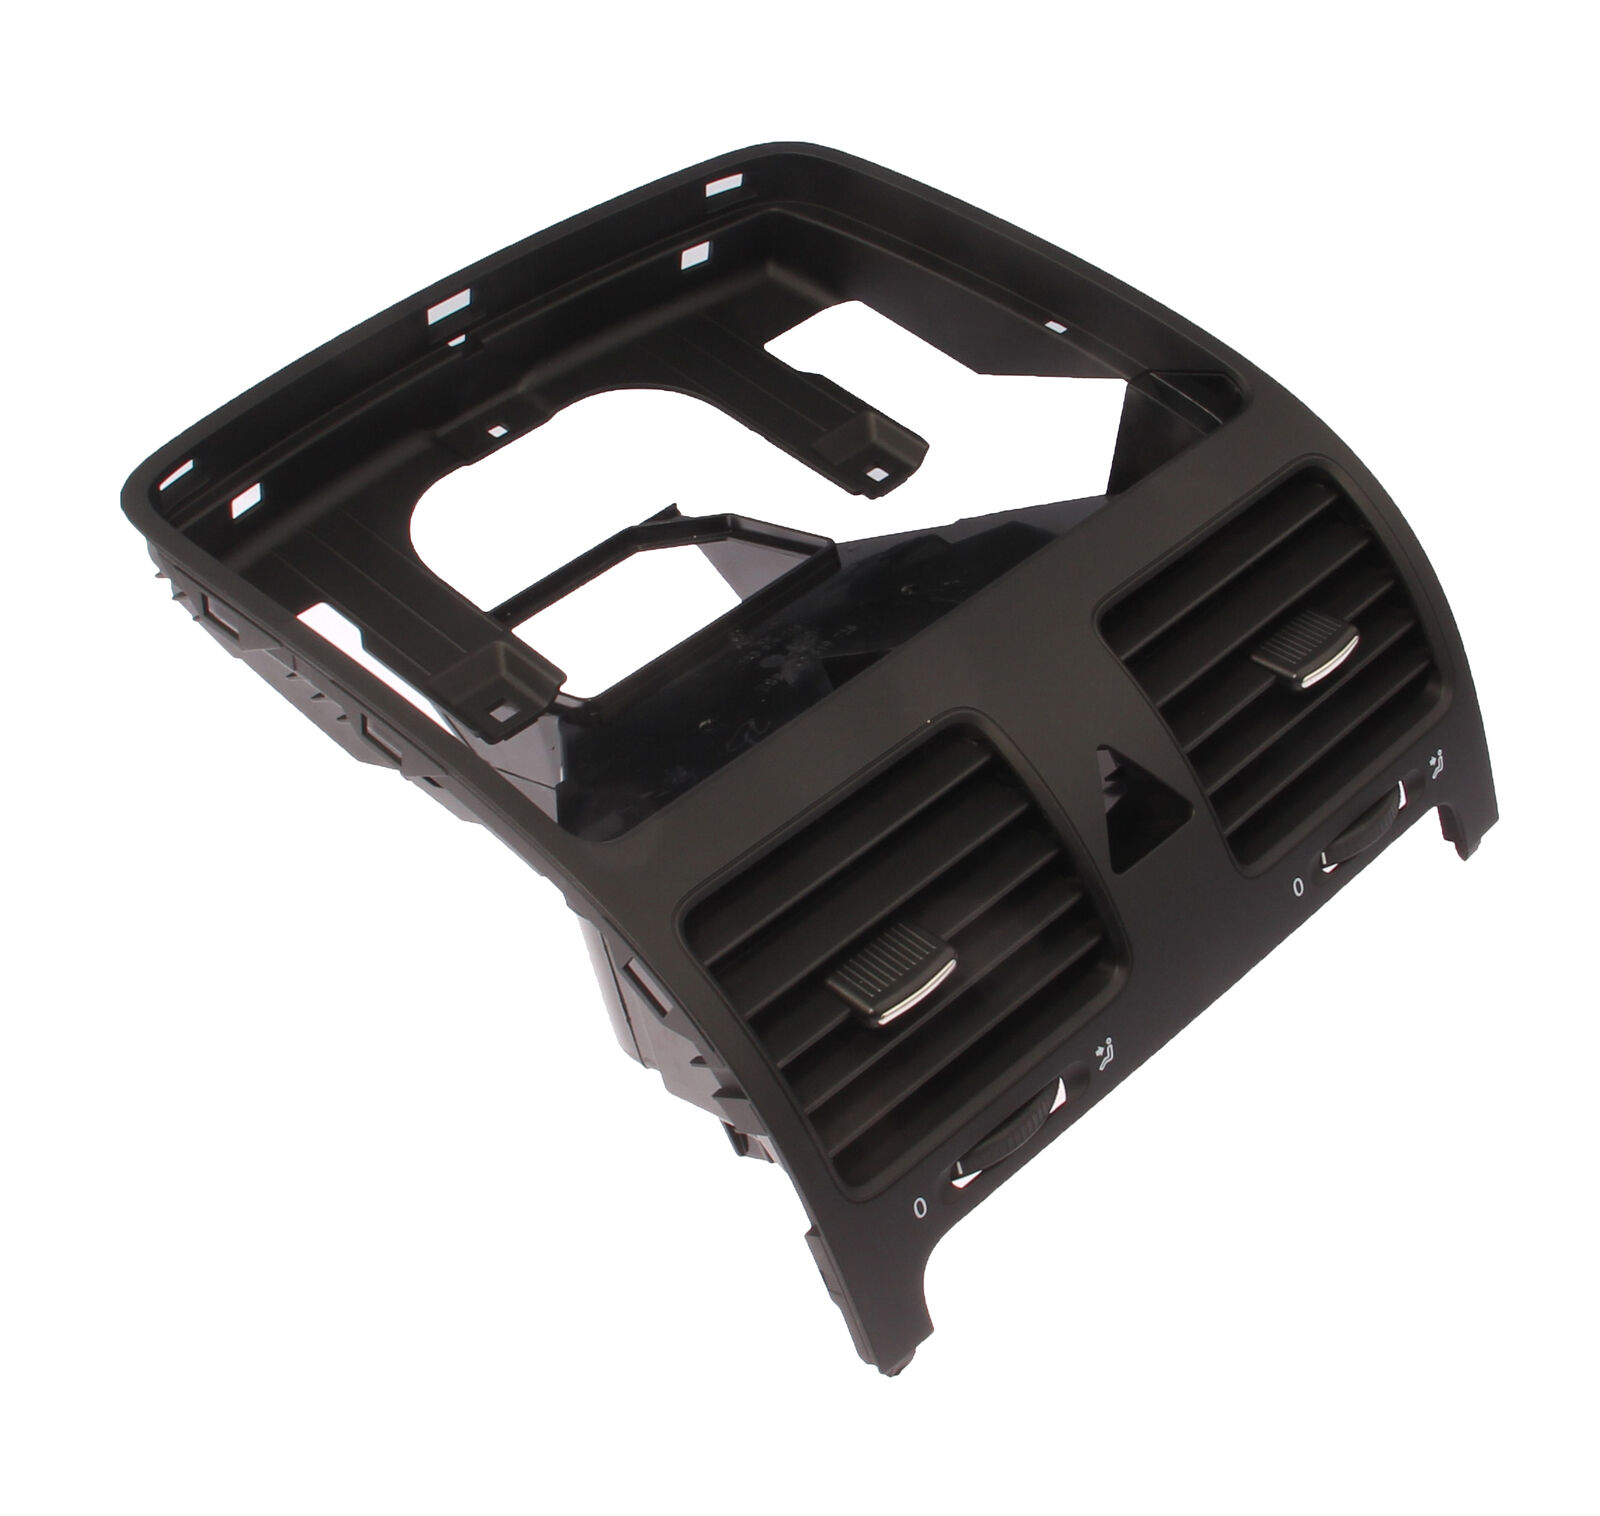 Oe Dash Central Air Outlet Vent Black Front For Vw Golf Gti Jetta Mk5 Fuse Box 1 Of 6 See More